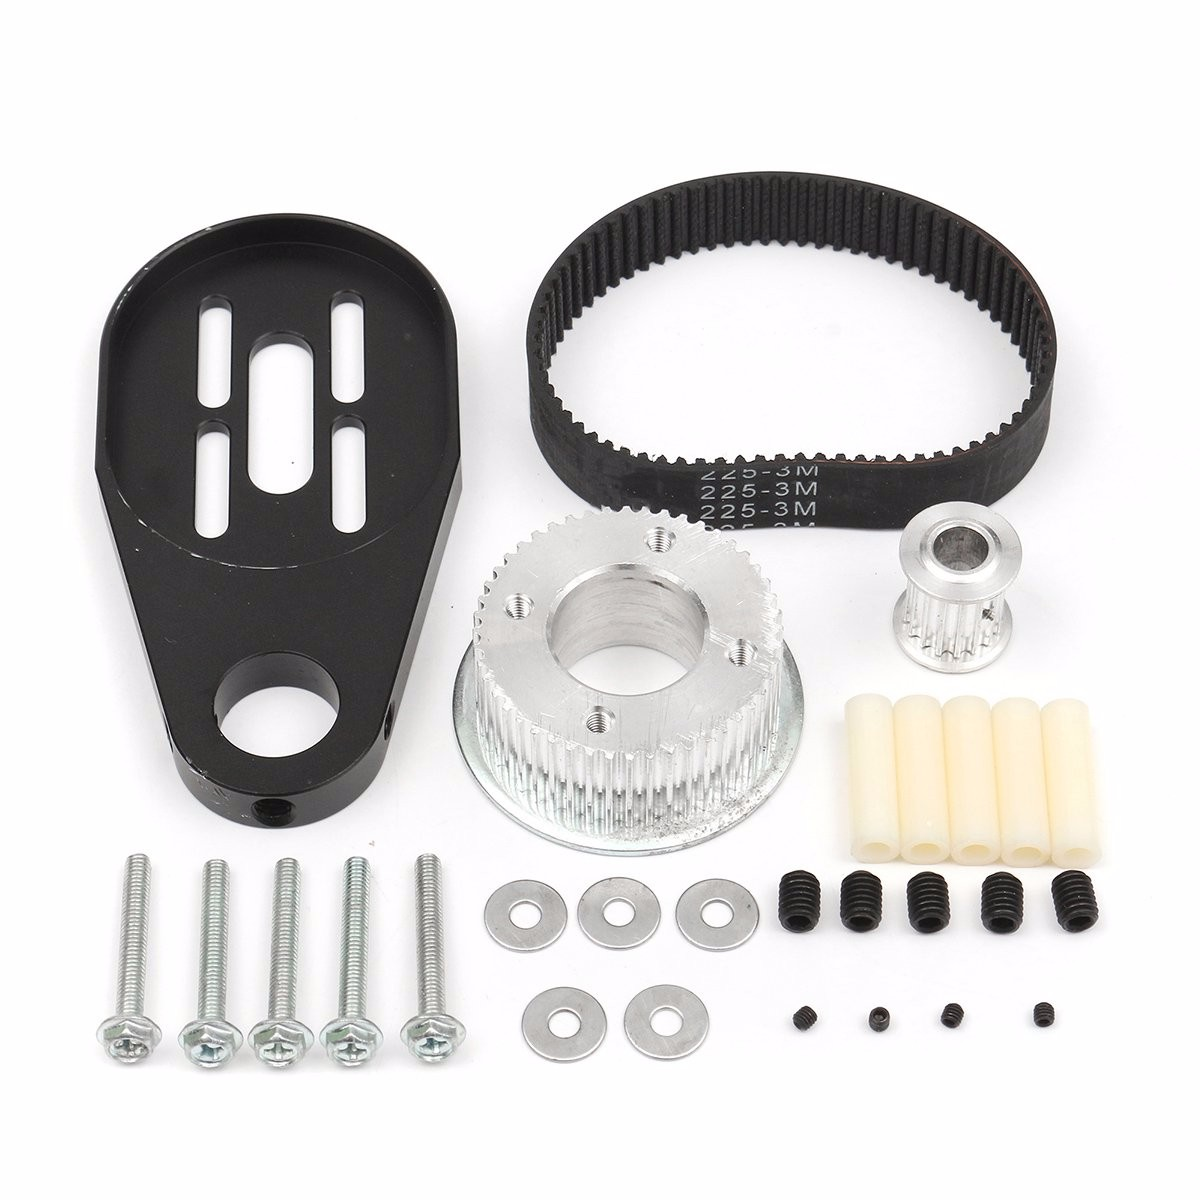 New DIY Electric Skateboard Parts Pulley Drive Belt And Motor Mount Kit For 80MM Wheel Parts Accessories